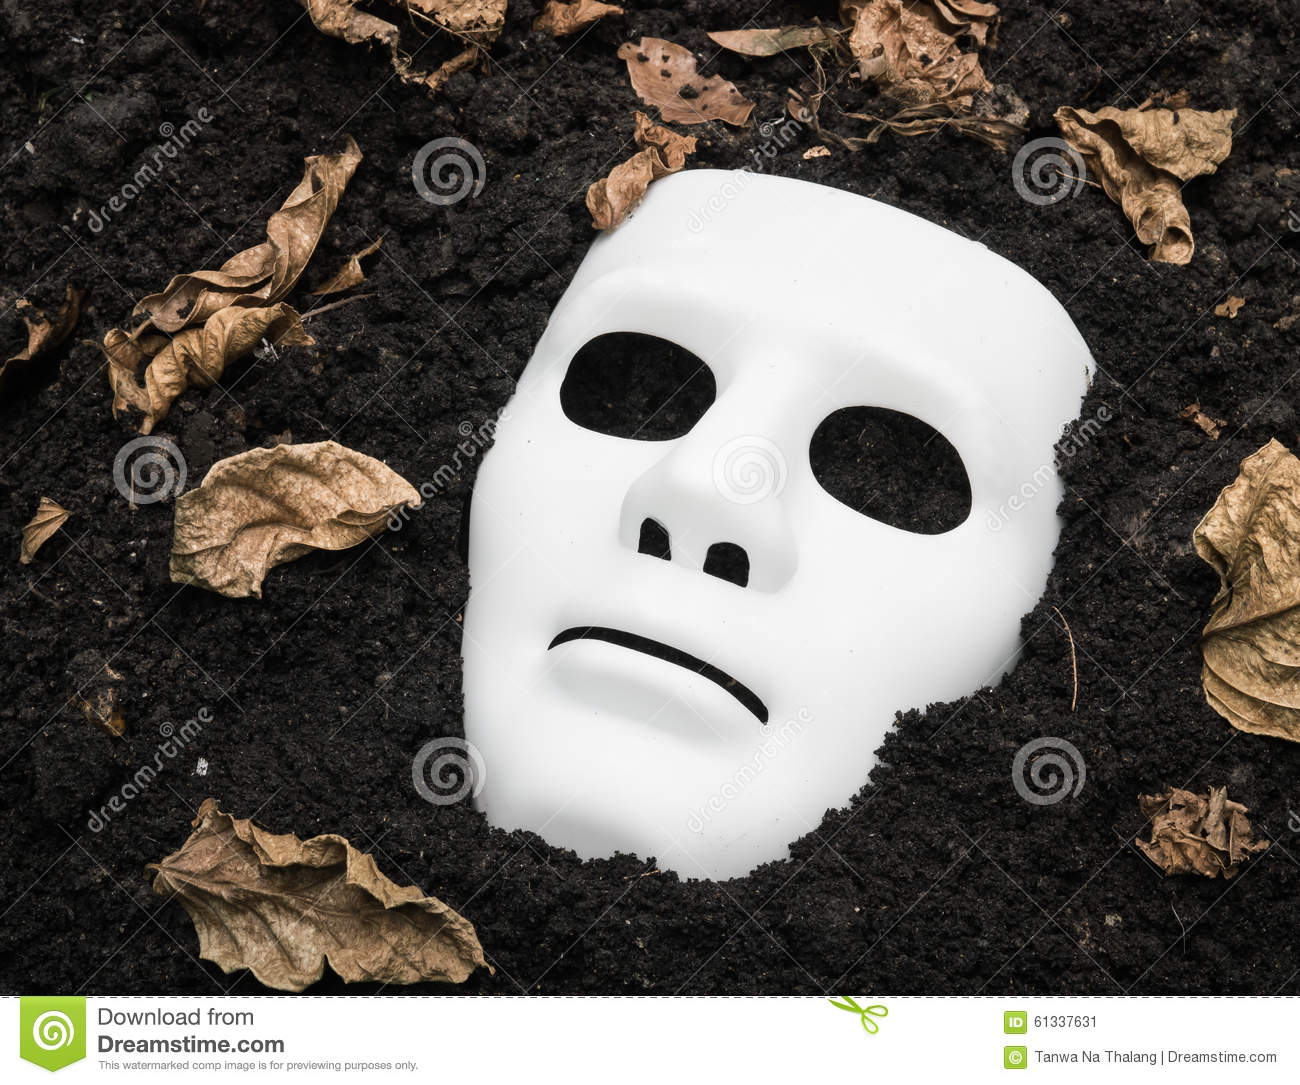 Scary Halloween Mask On The Ground Stock Photo - Image: 61337631